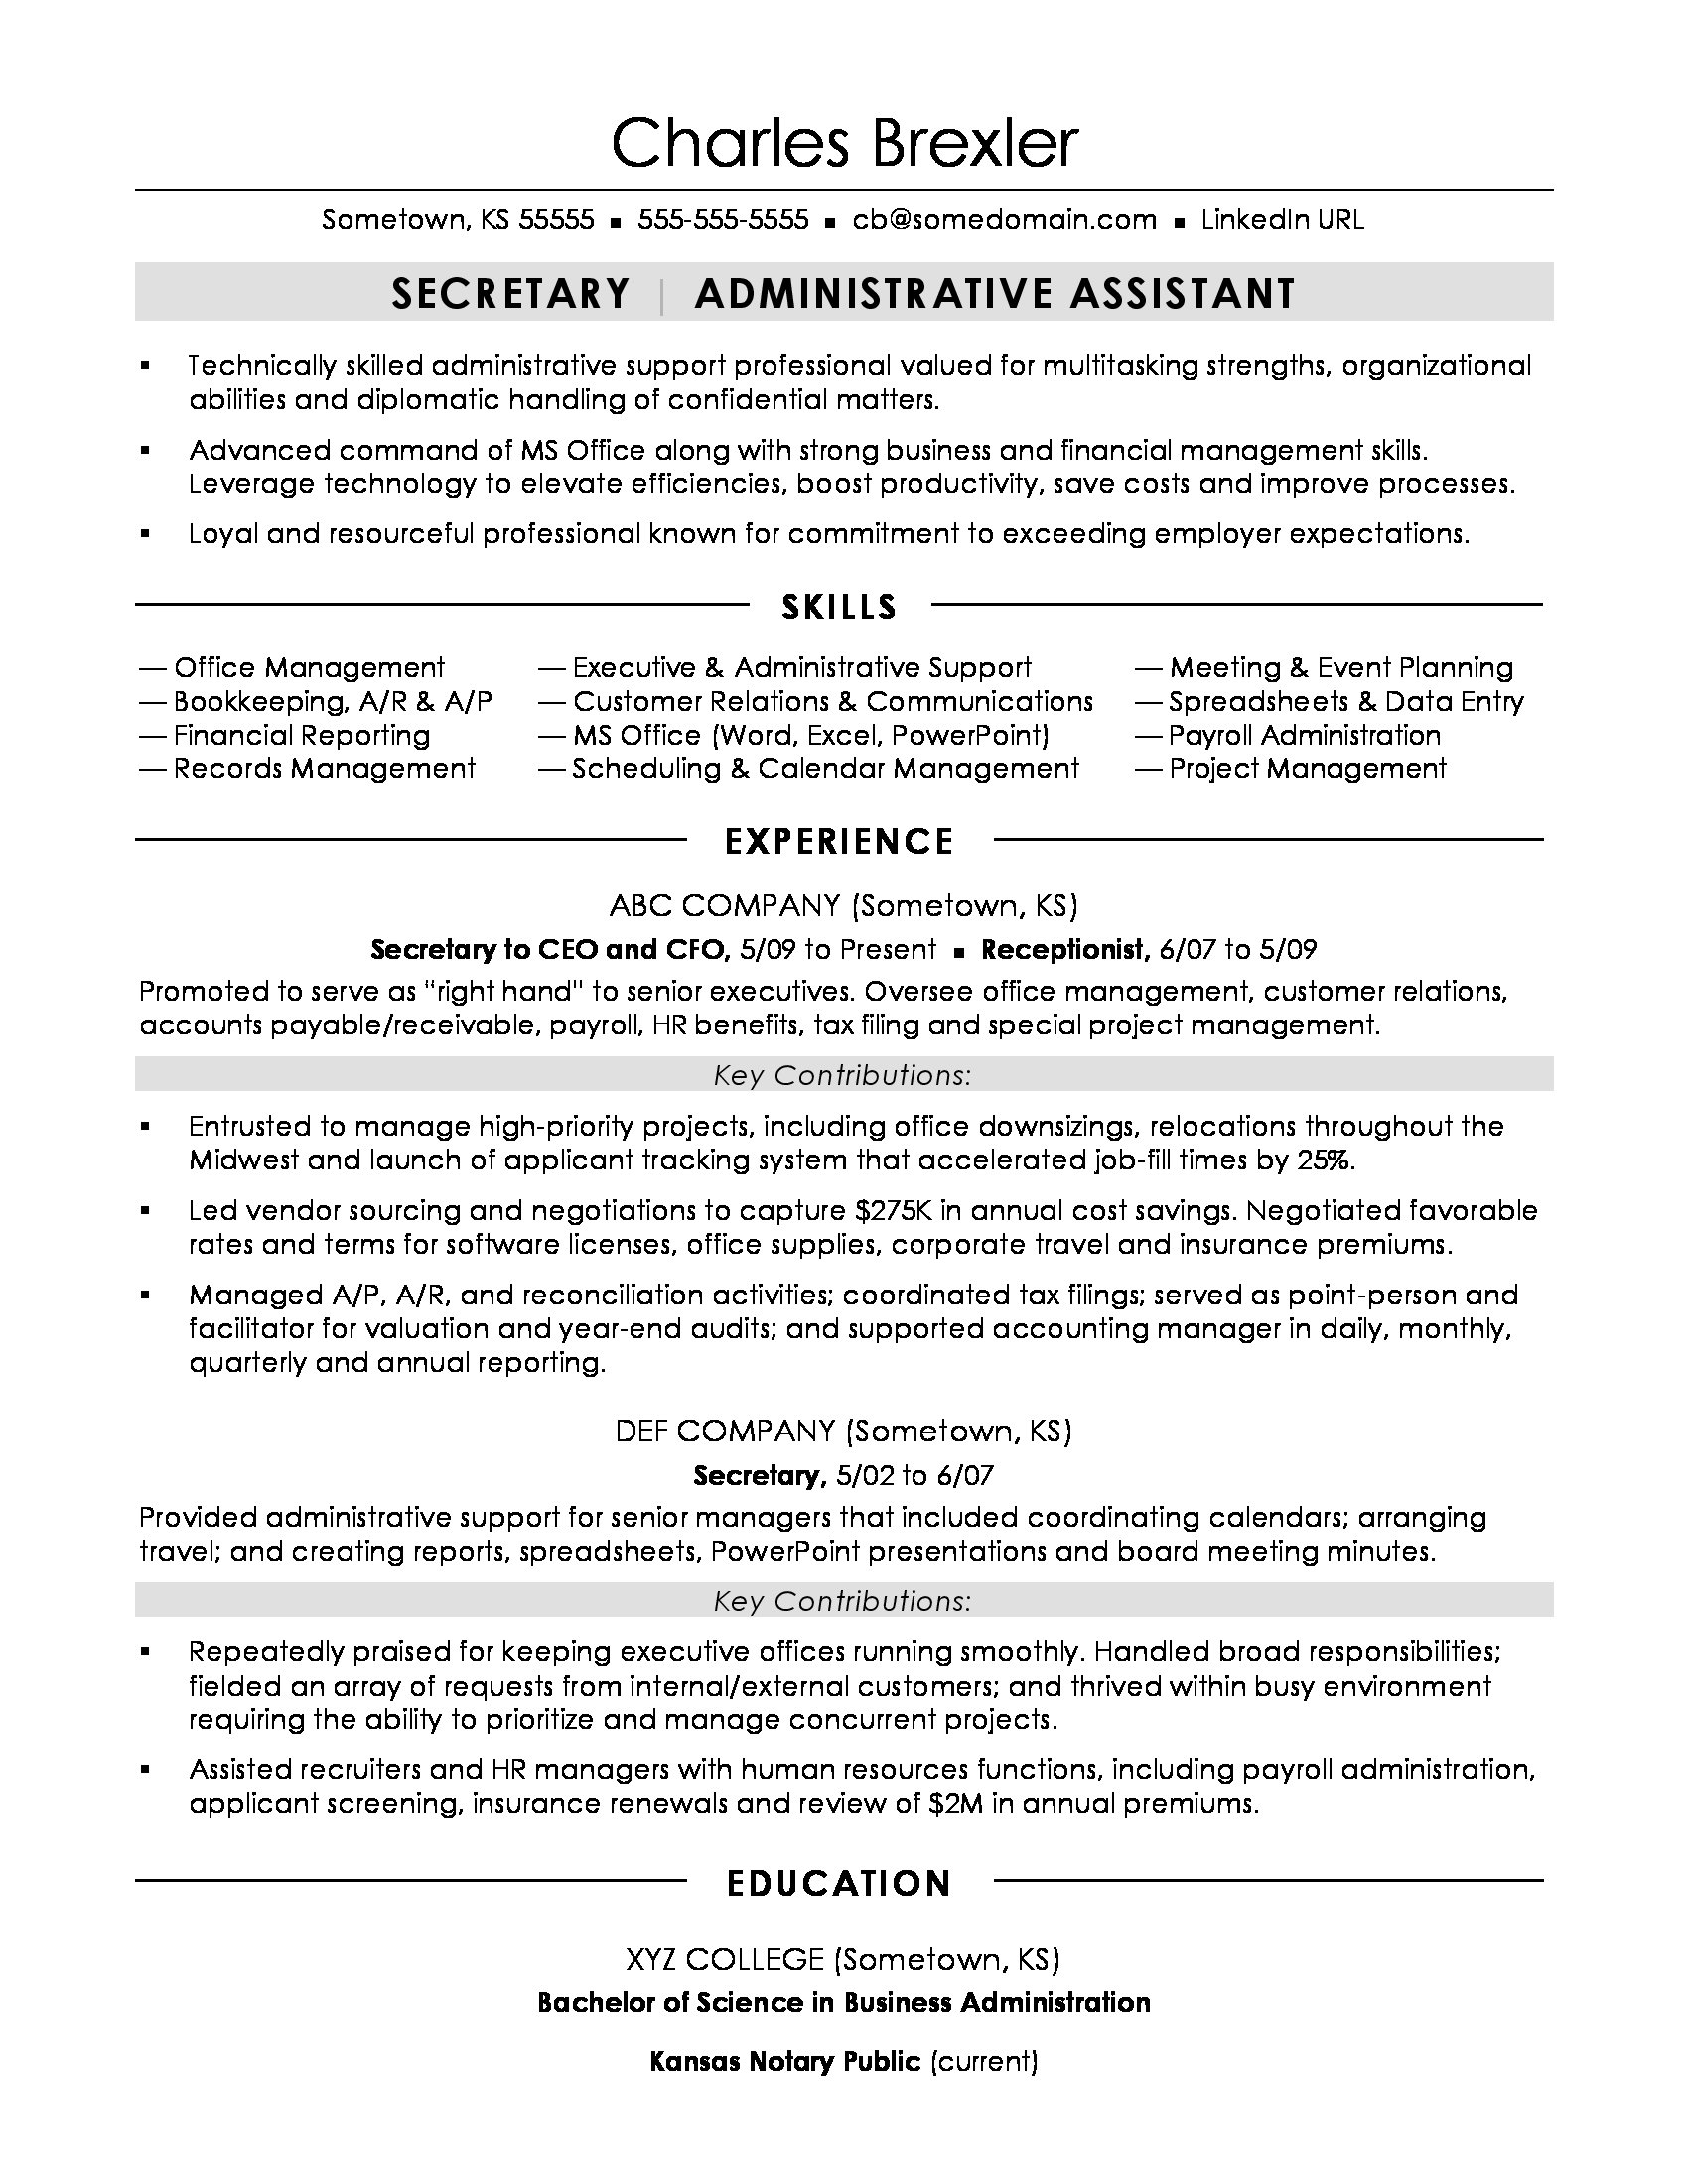 Secretary Resume Sample  Data Entry Skills Resume